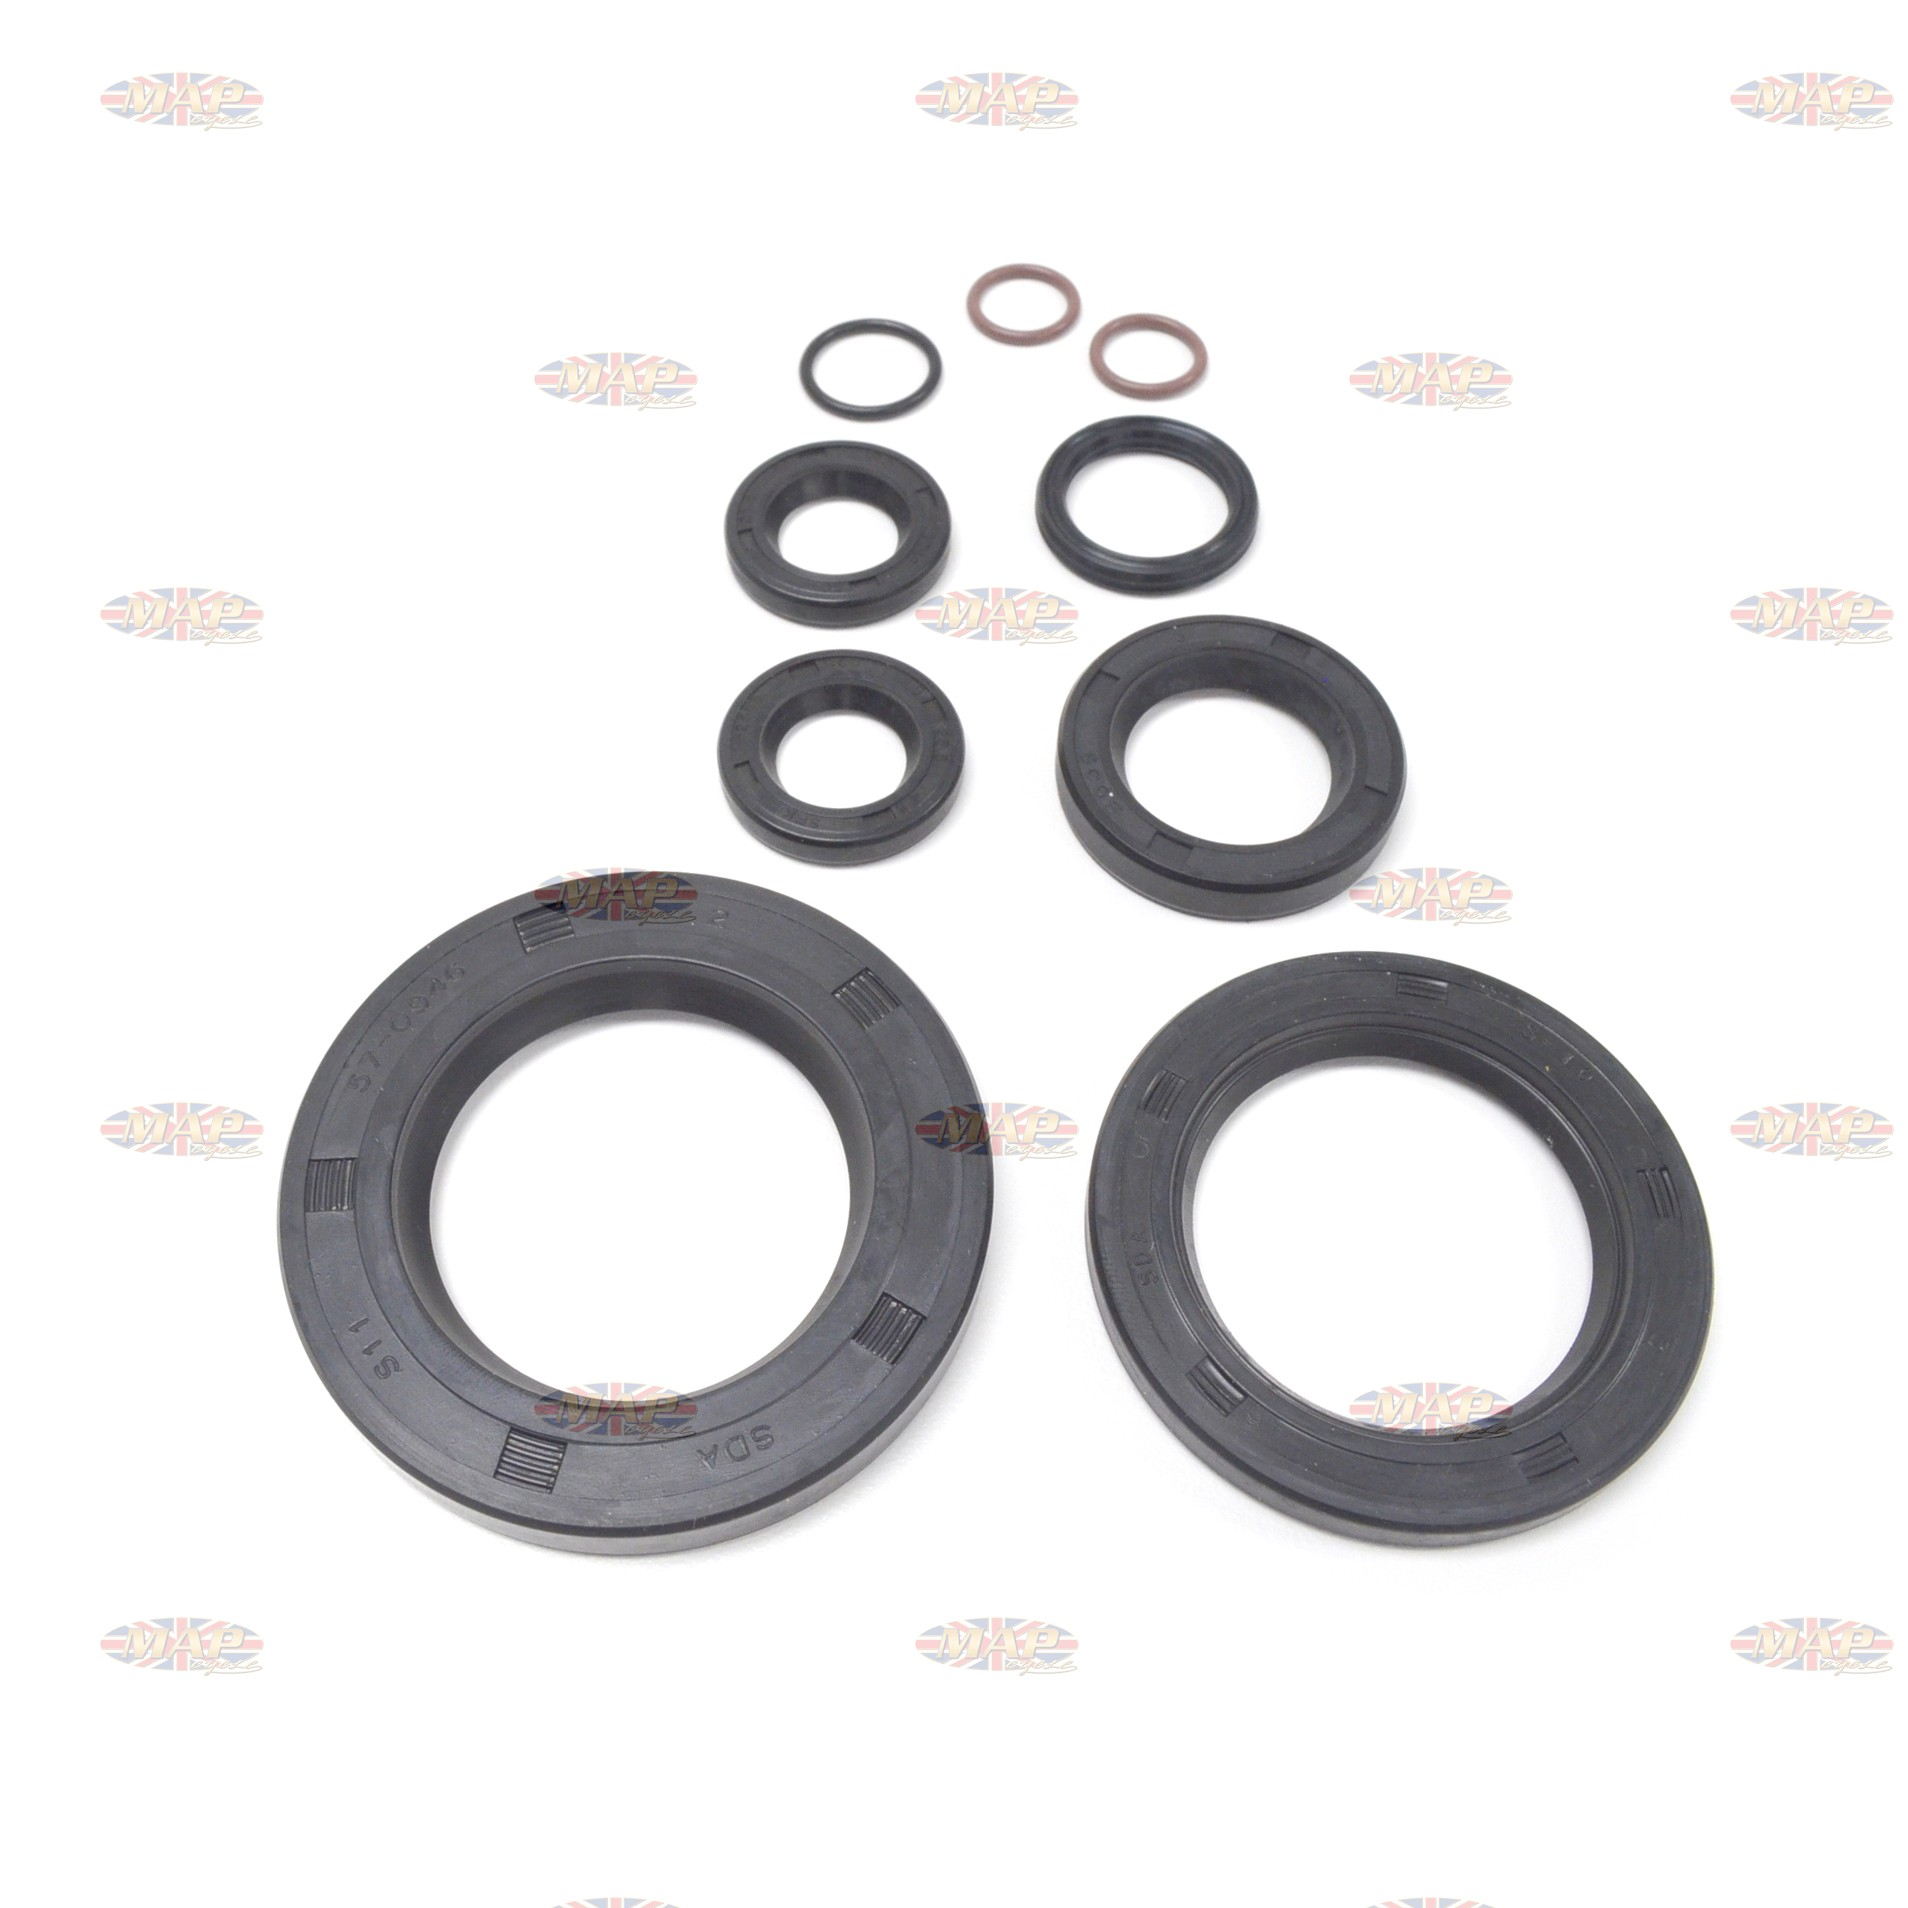 "Triumph 650 63-68 w/1.38"" OD Door Seal Kit MAP0204/A"